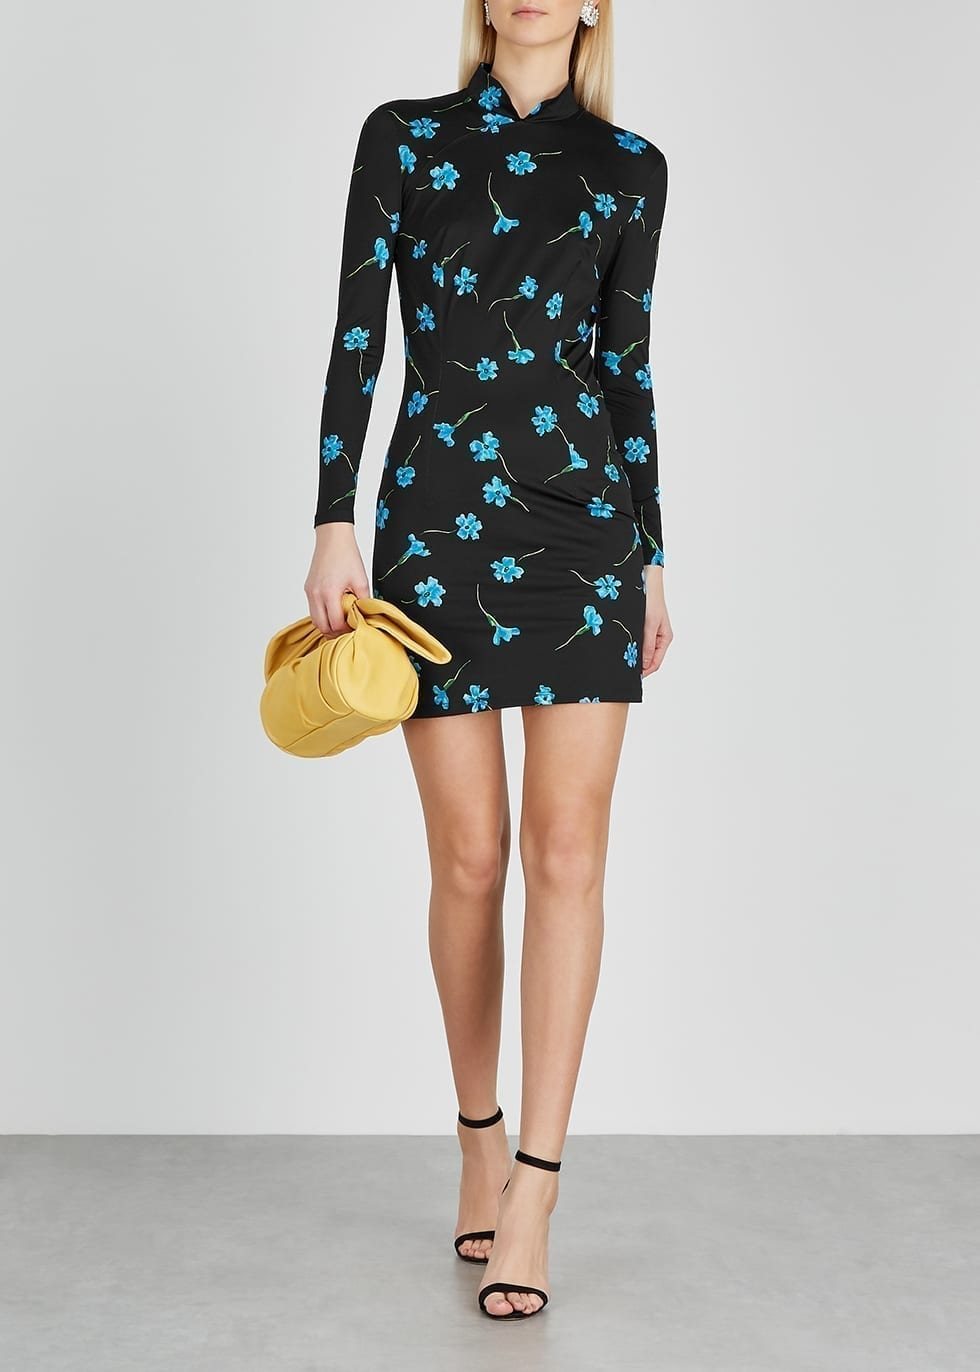 MARCIA Mirelle Floral-print Stretch-jersey Mini Dress